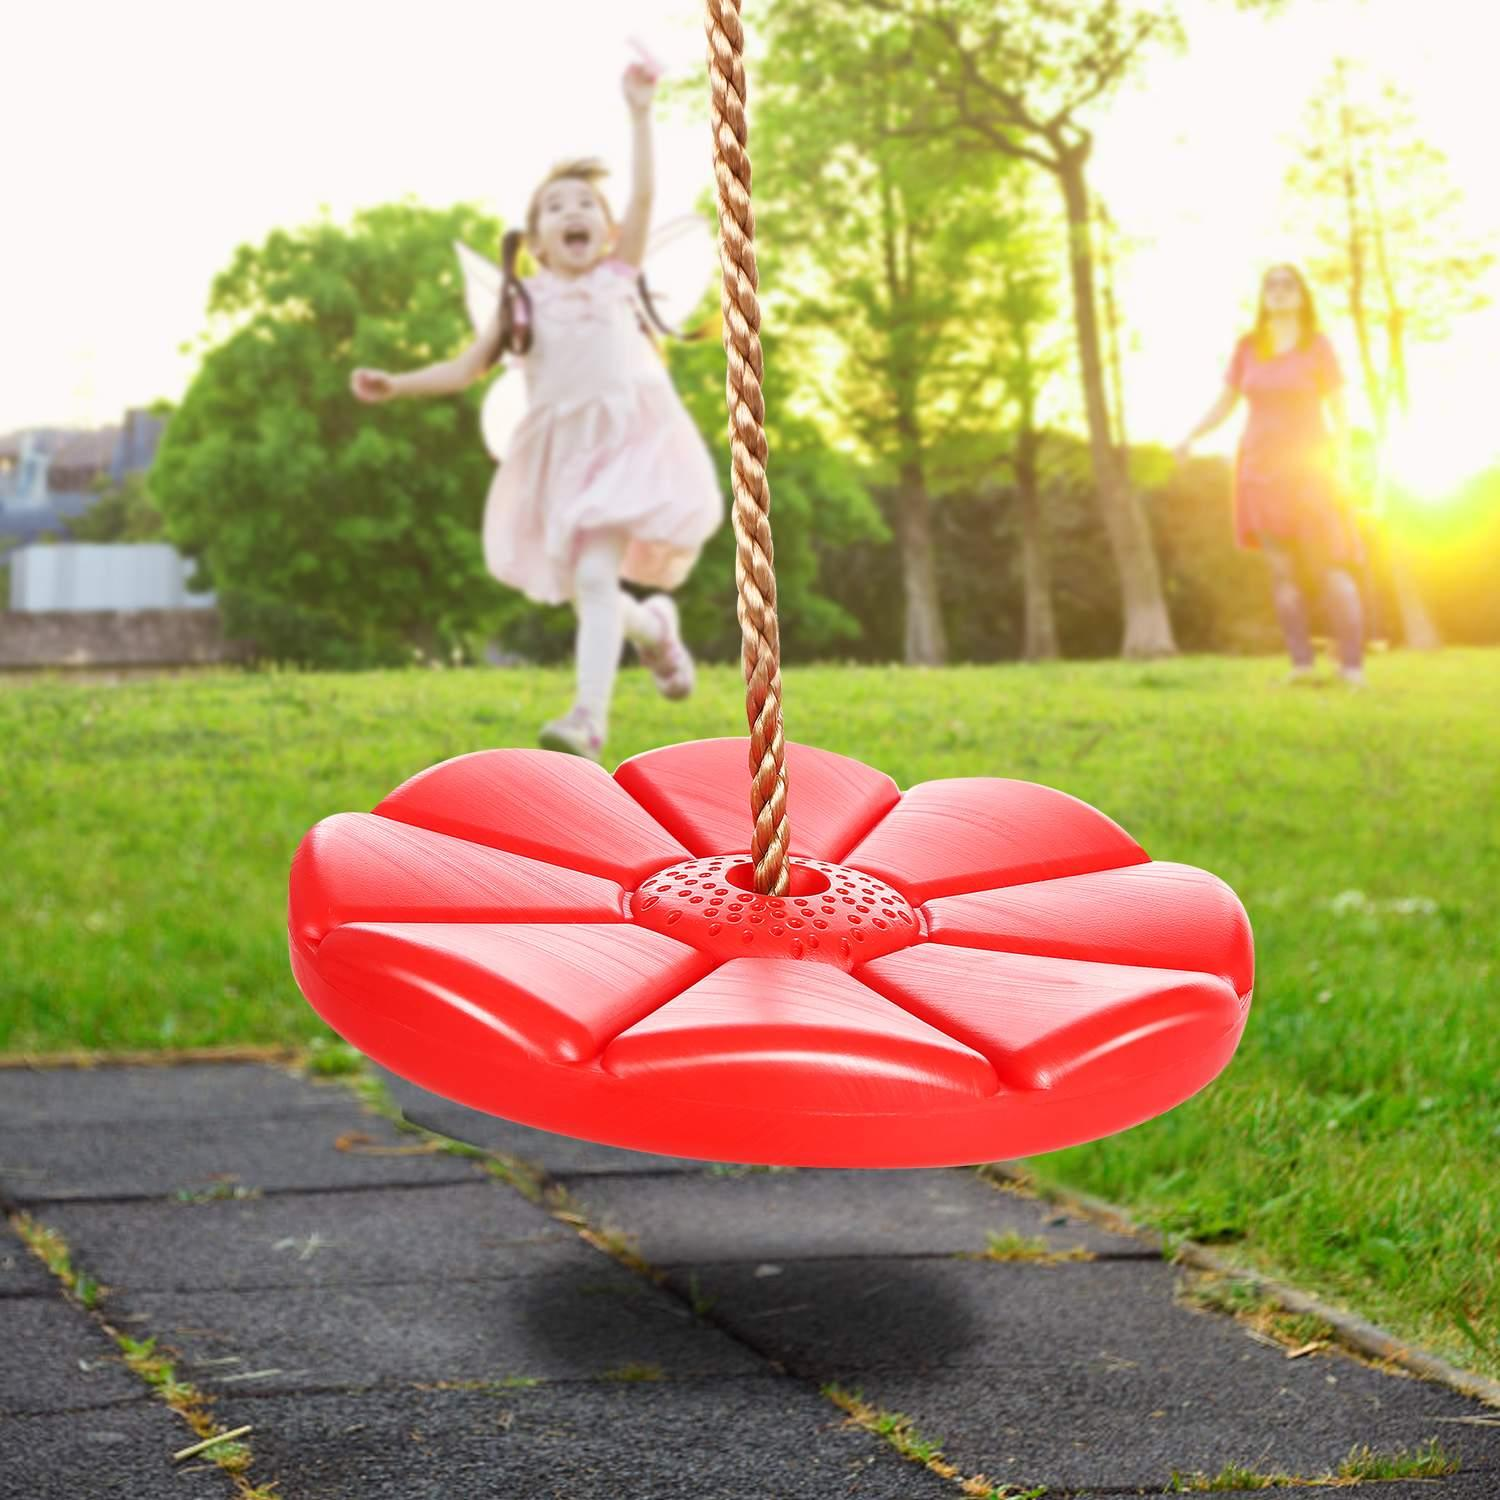 Clearance! Disc Swing Seat Kids Adult Toy Outdoor Round Swing Playground Play Set with Chain  cbst